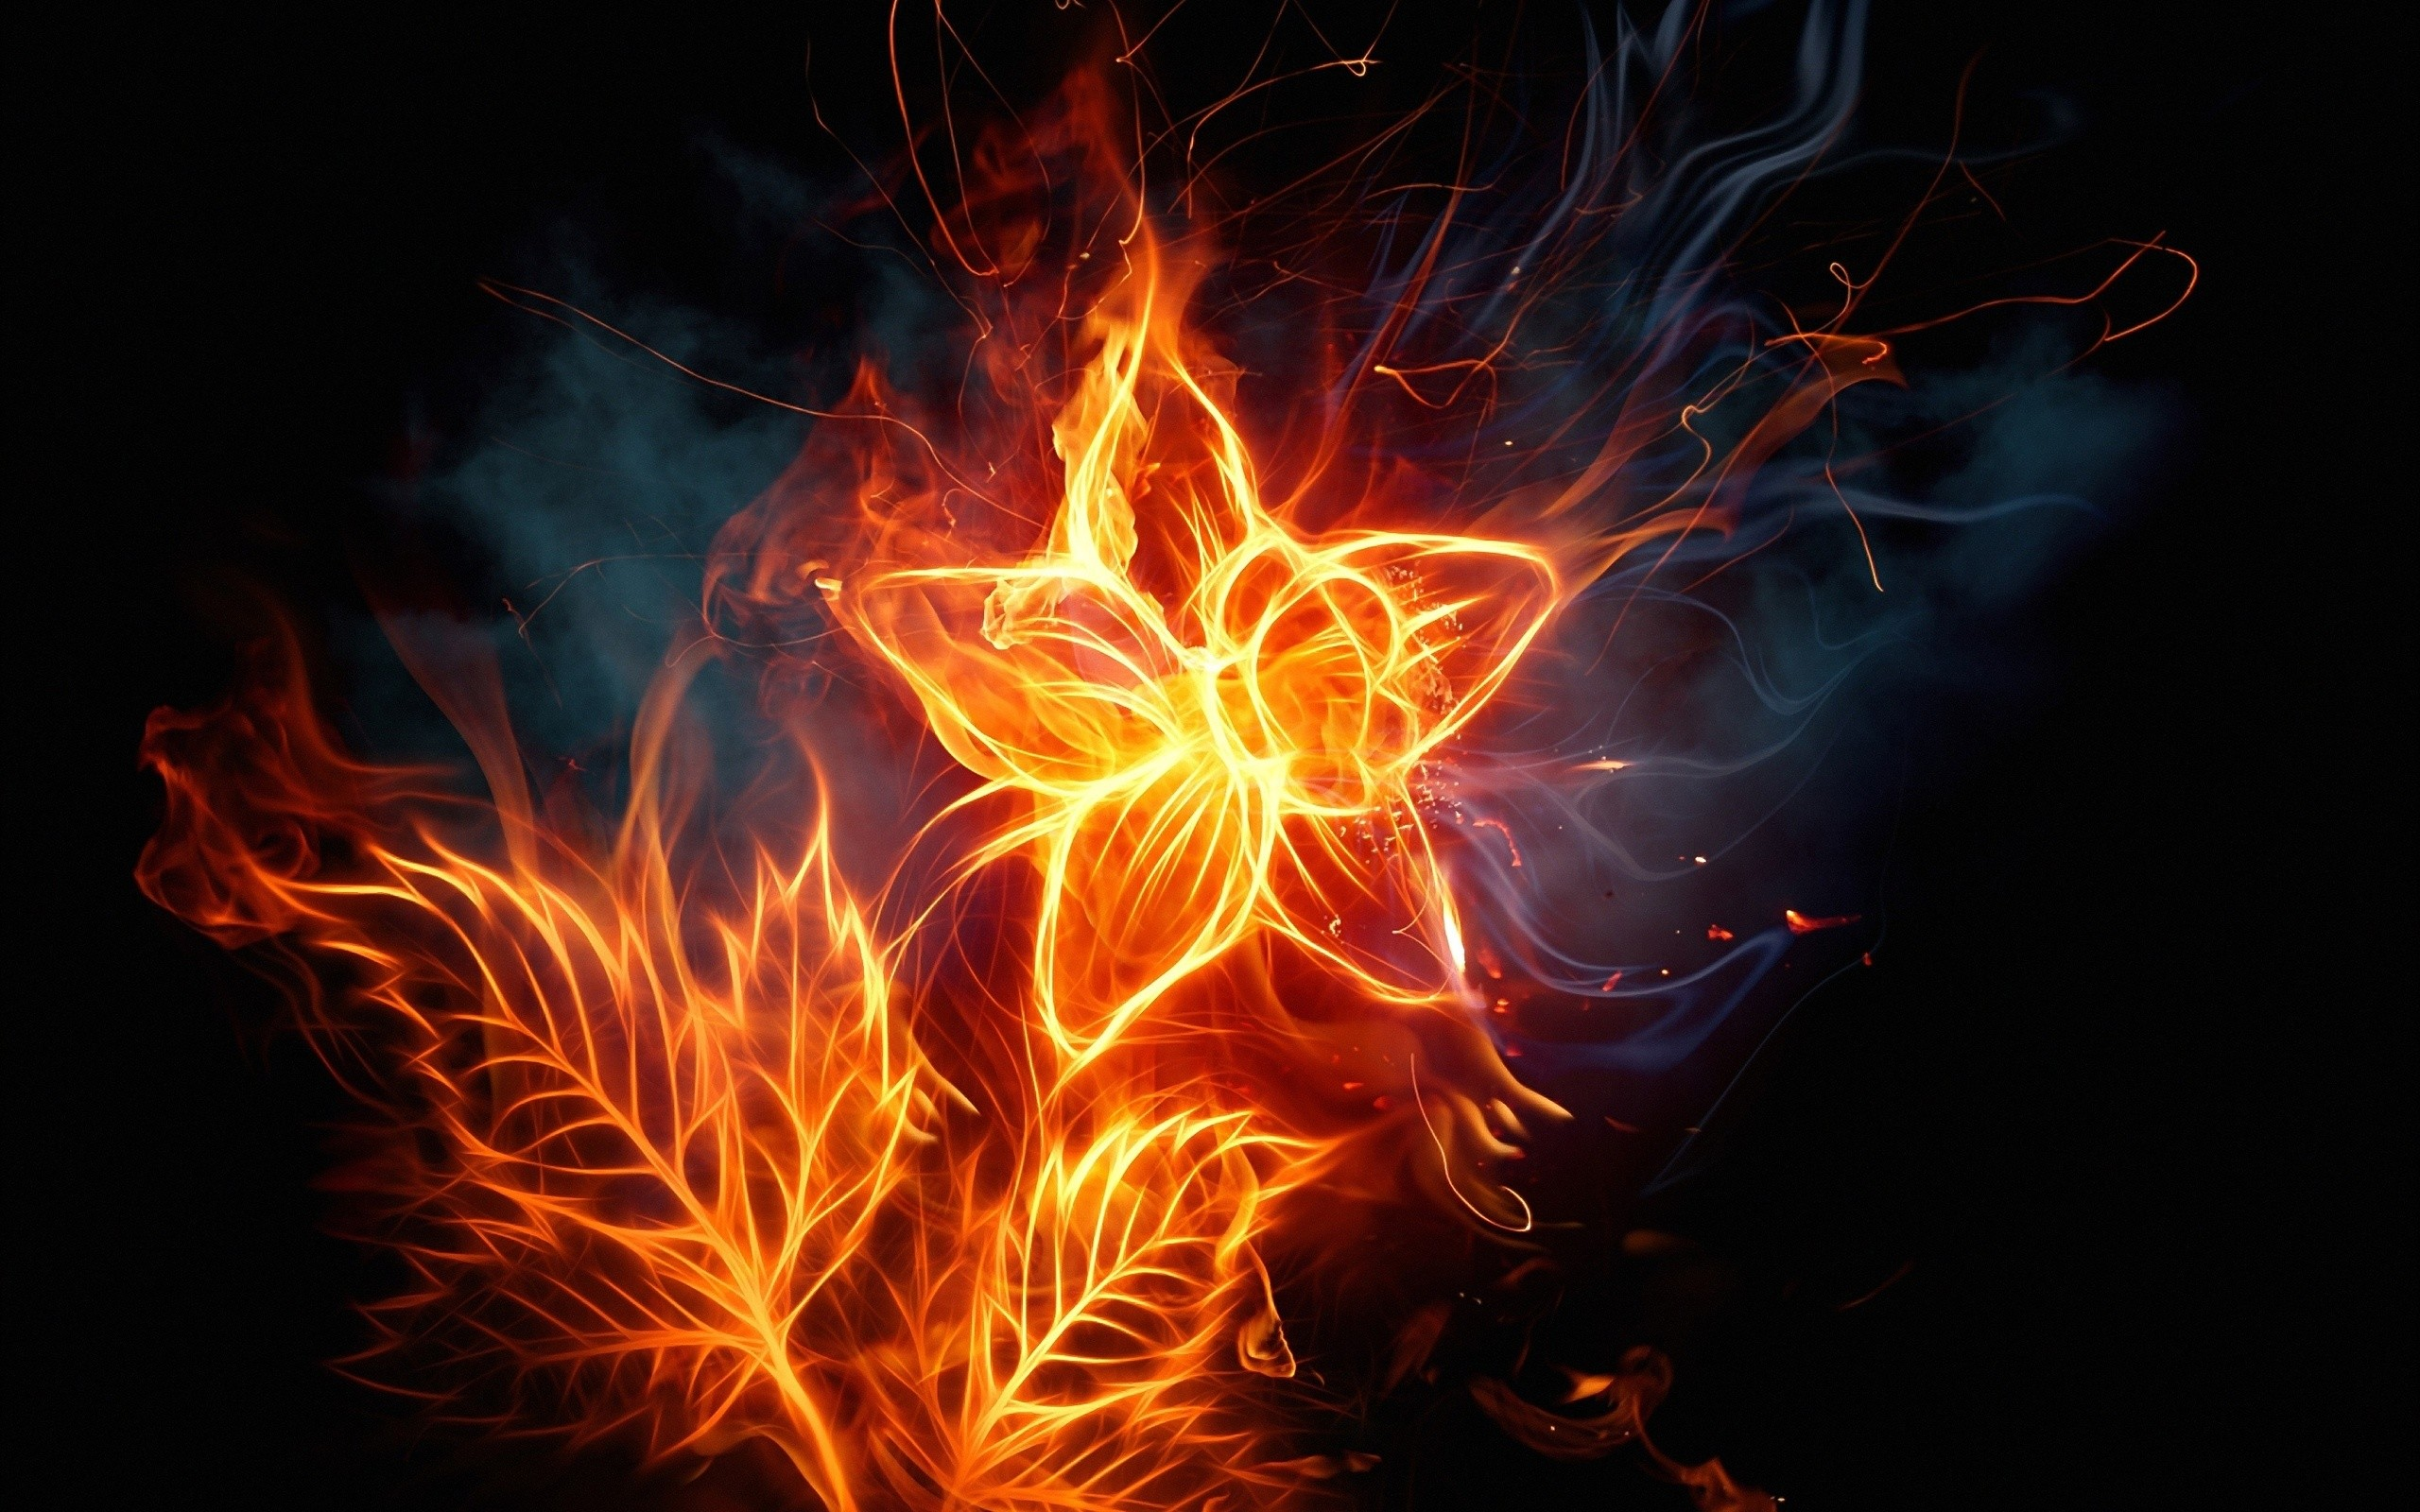 Wallpaper For Fire Tablet 82 Images